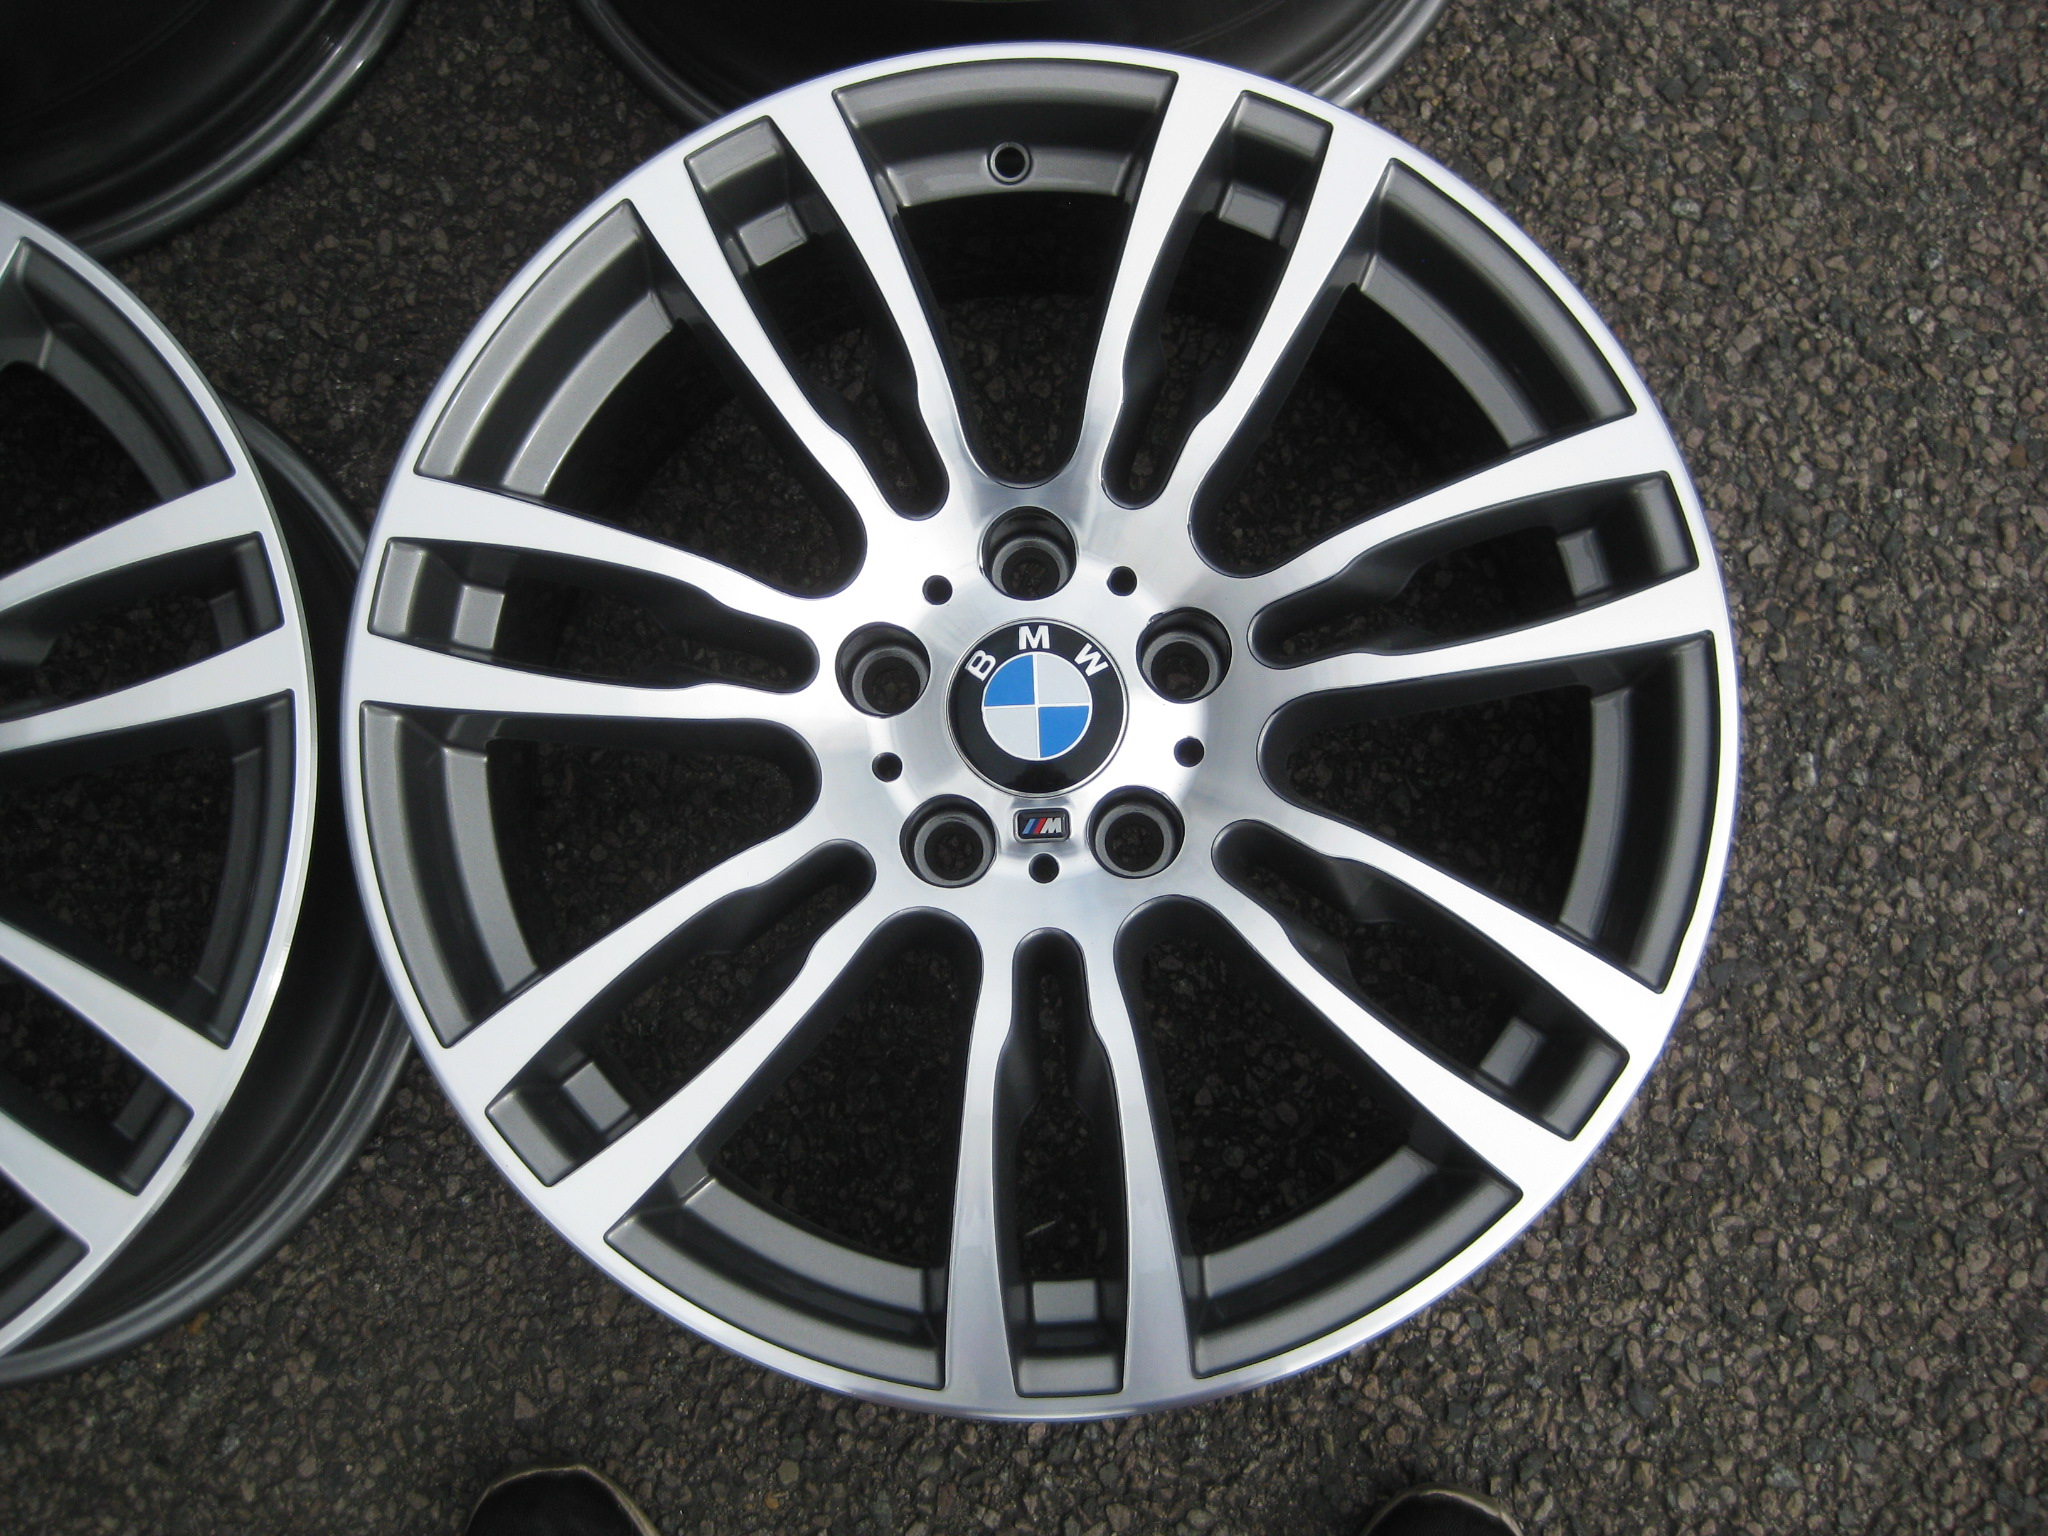 "USED 19"" GENUINE STYLE 403 F30/31 M DOUBLE SPOKE ALLOY WHEELS,WIDE REAR, FULLY REFURBED"